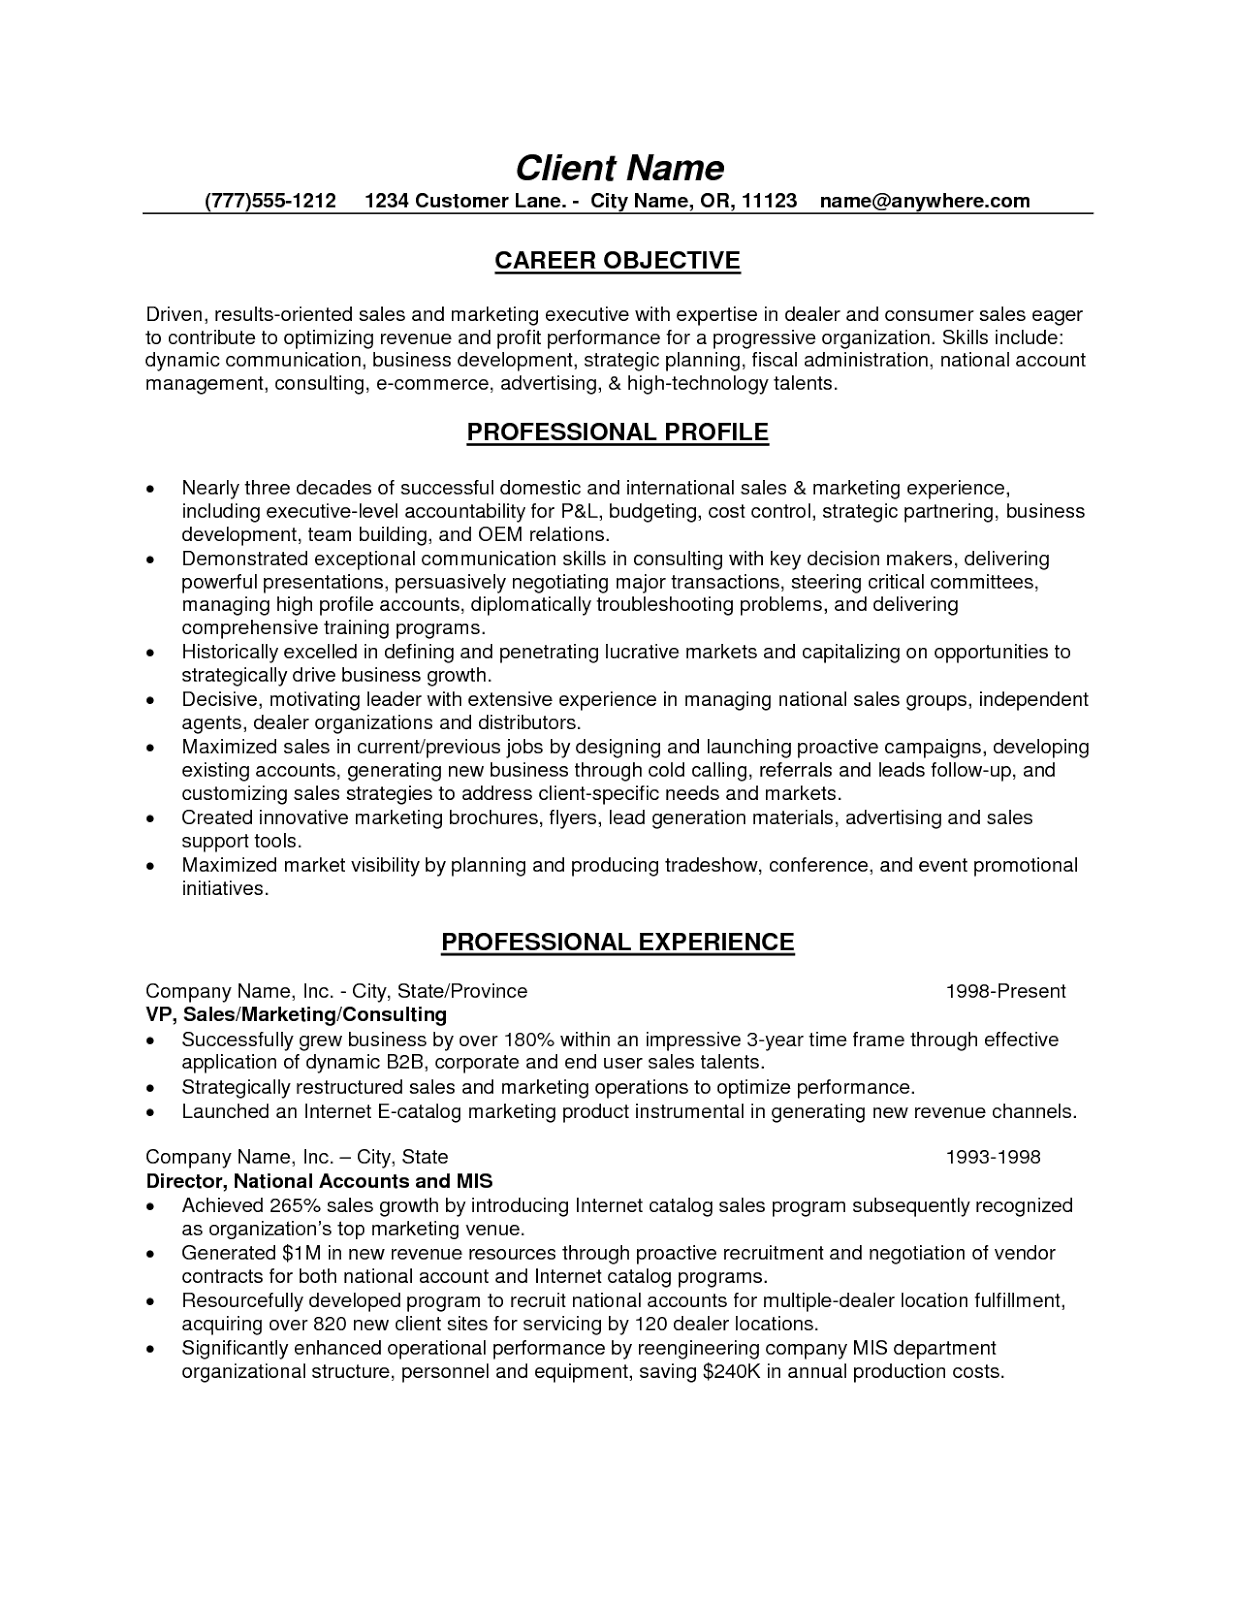 Resume Objective Examples Sales - Examples of Resumes